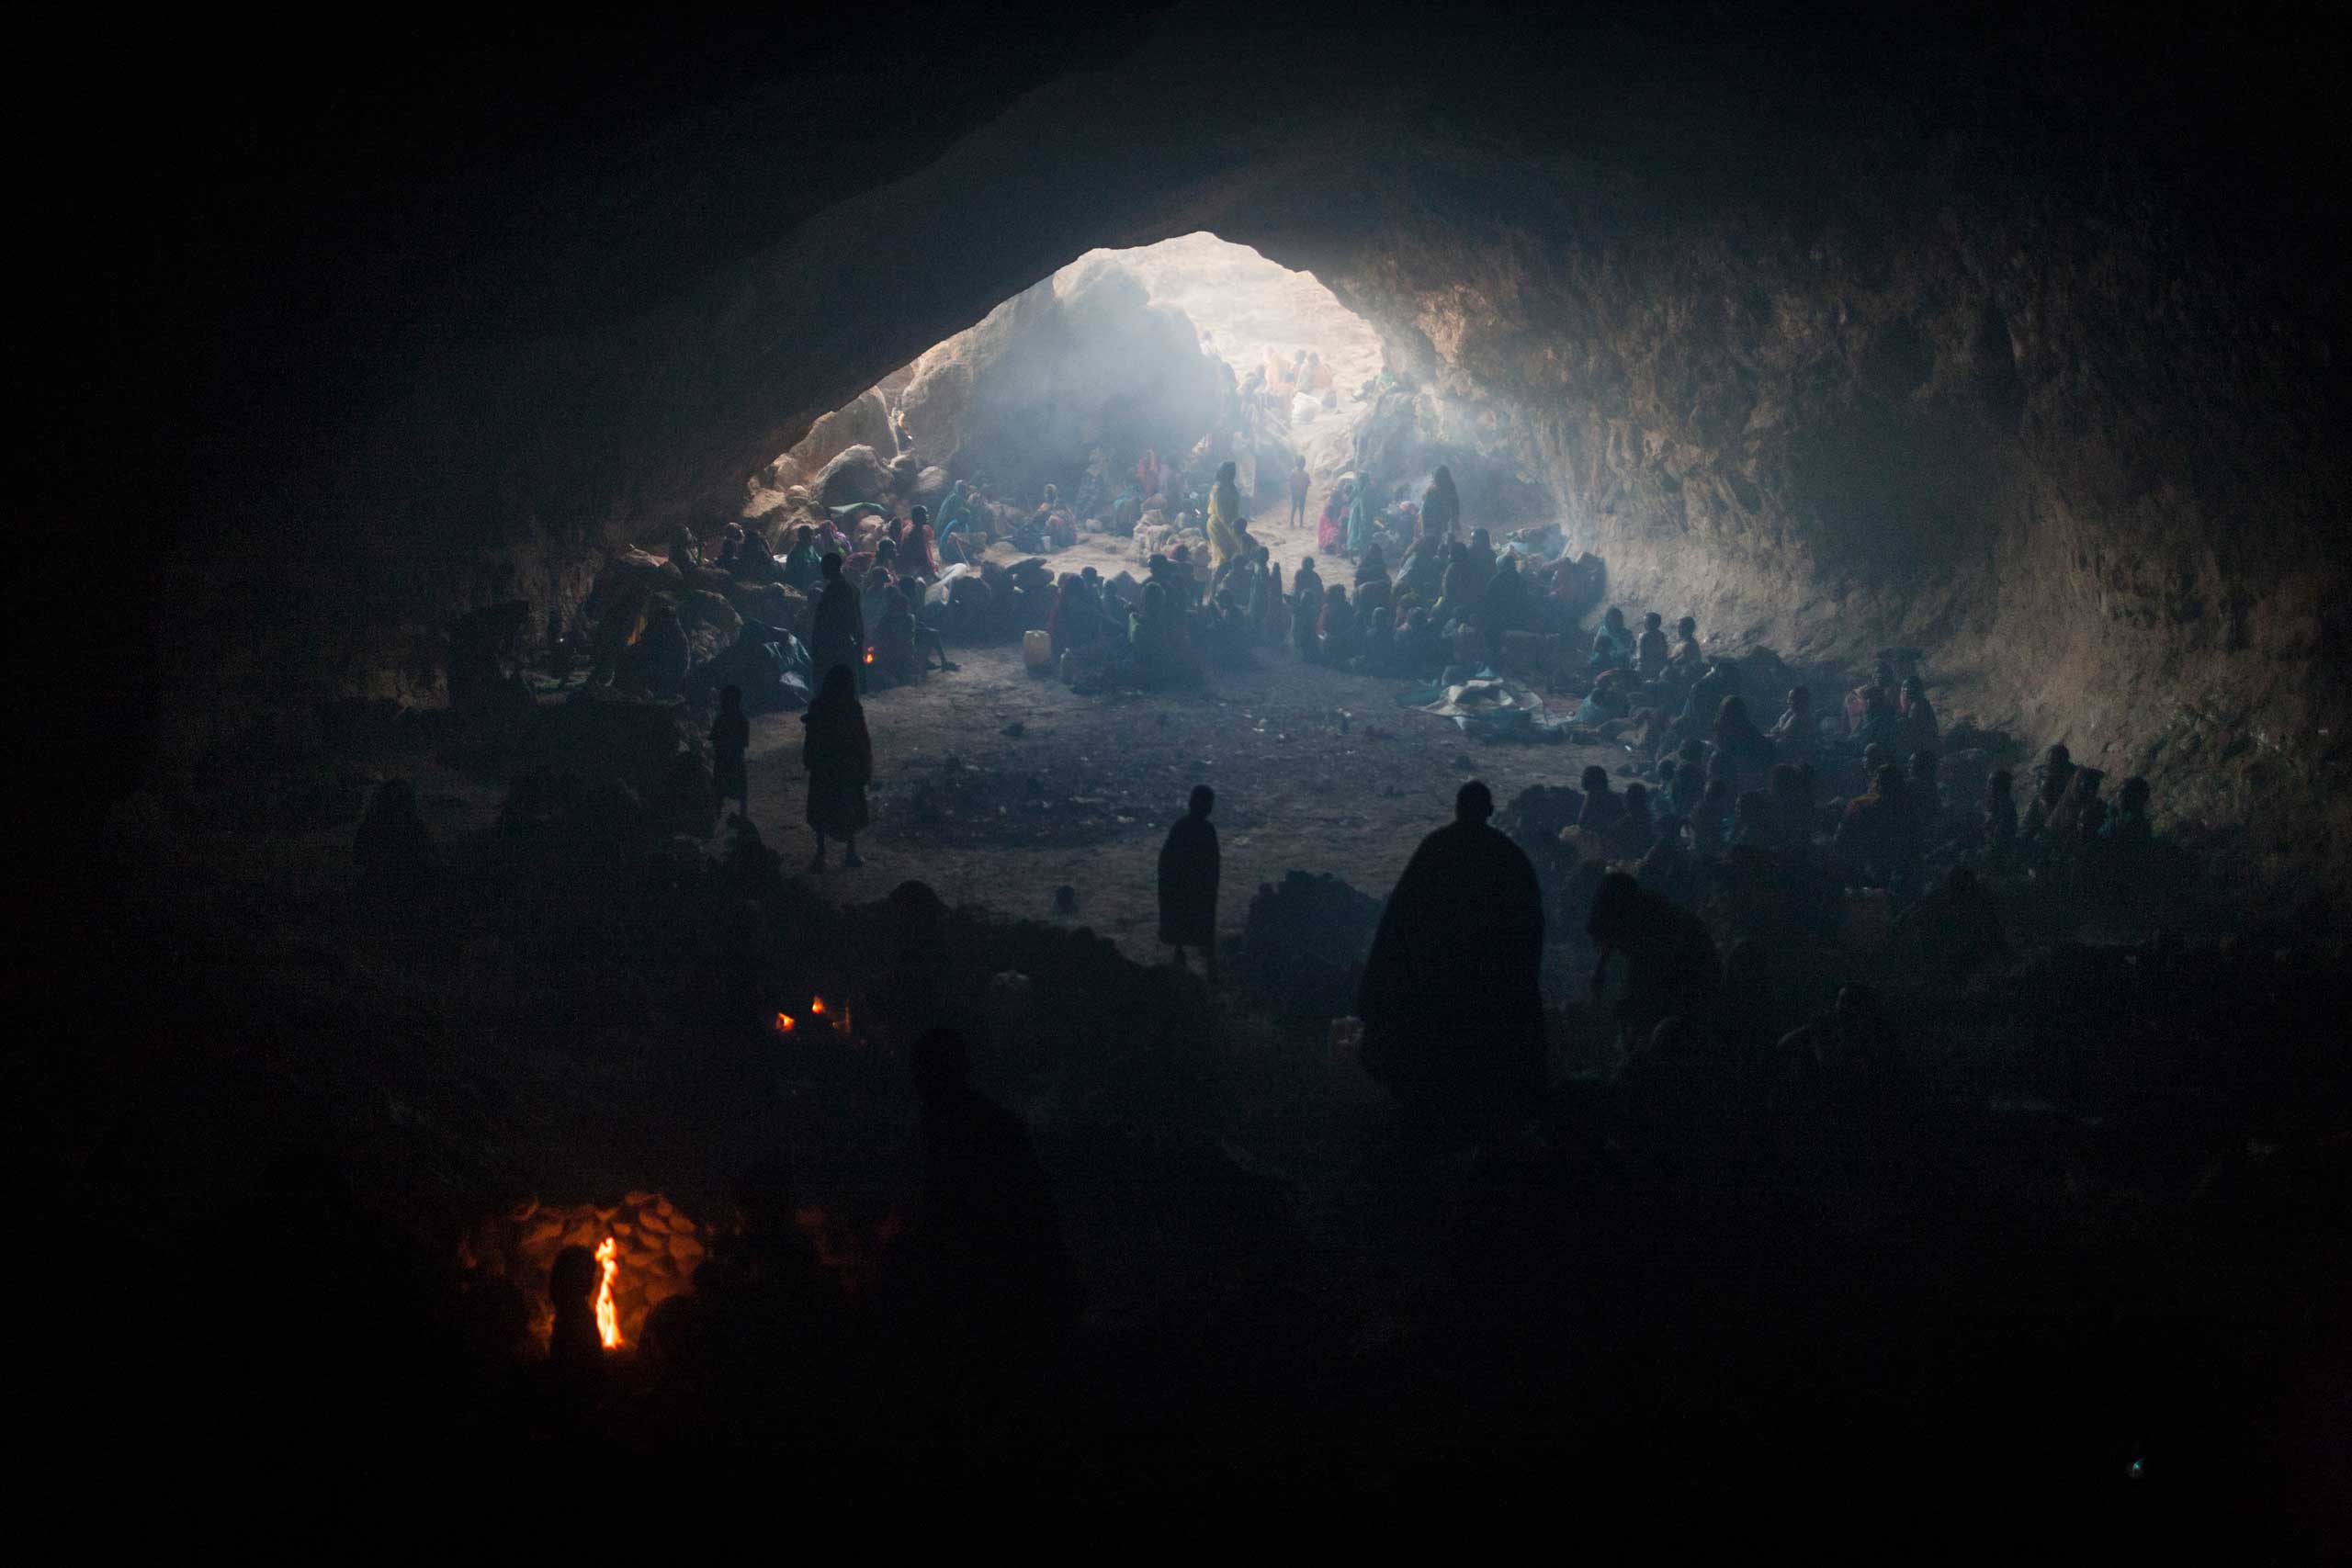 Hundreds of women and children seek shelter in a cave from the bombing by government forces outside of the town of Sarong in Central Darfur, Sudan, March 2, 2015.